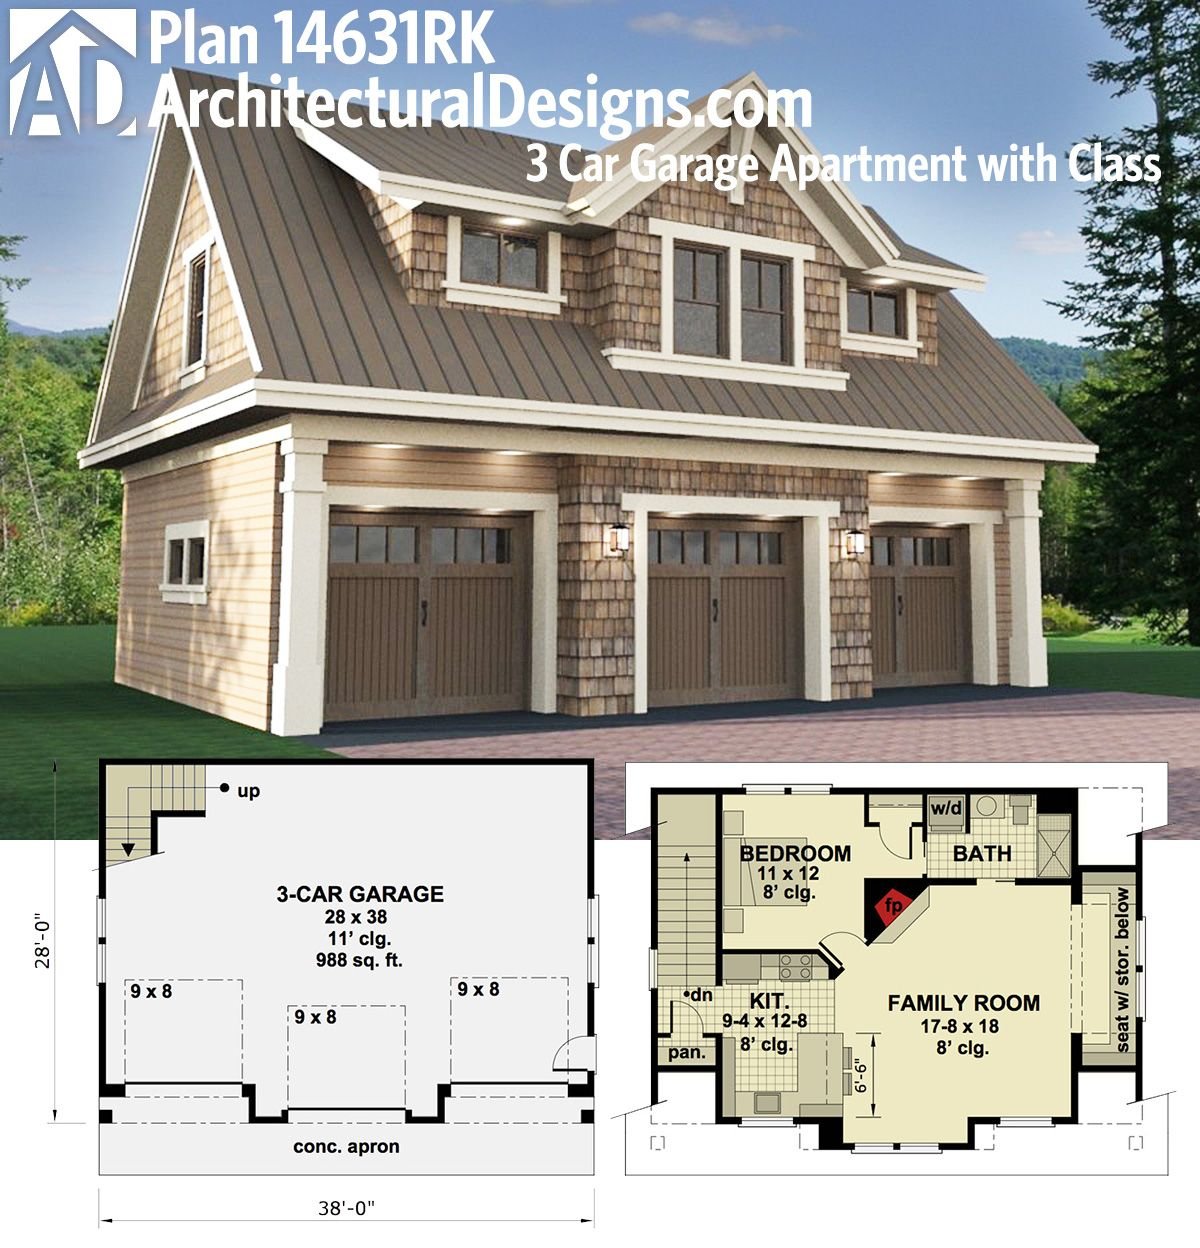 Plan 14631rk 3 car garage apartment with class carriage for 3 garage house plans